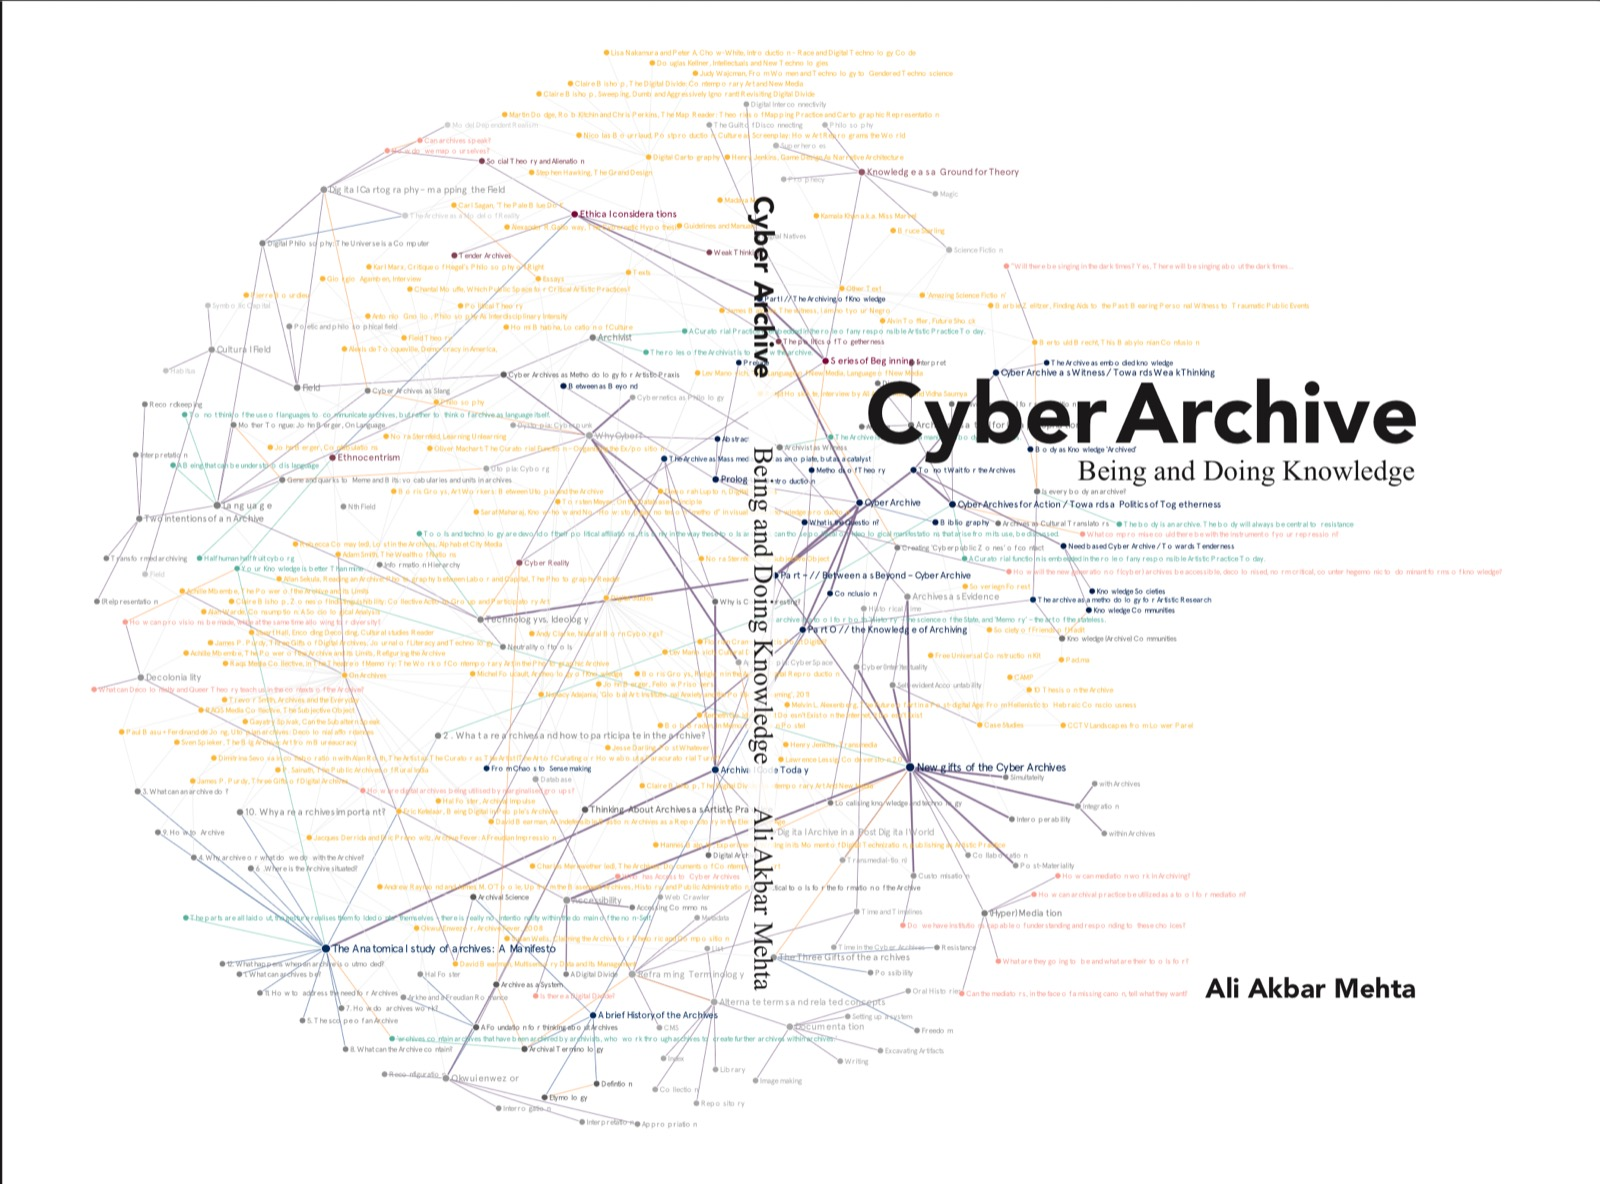 Cyber Archive